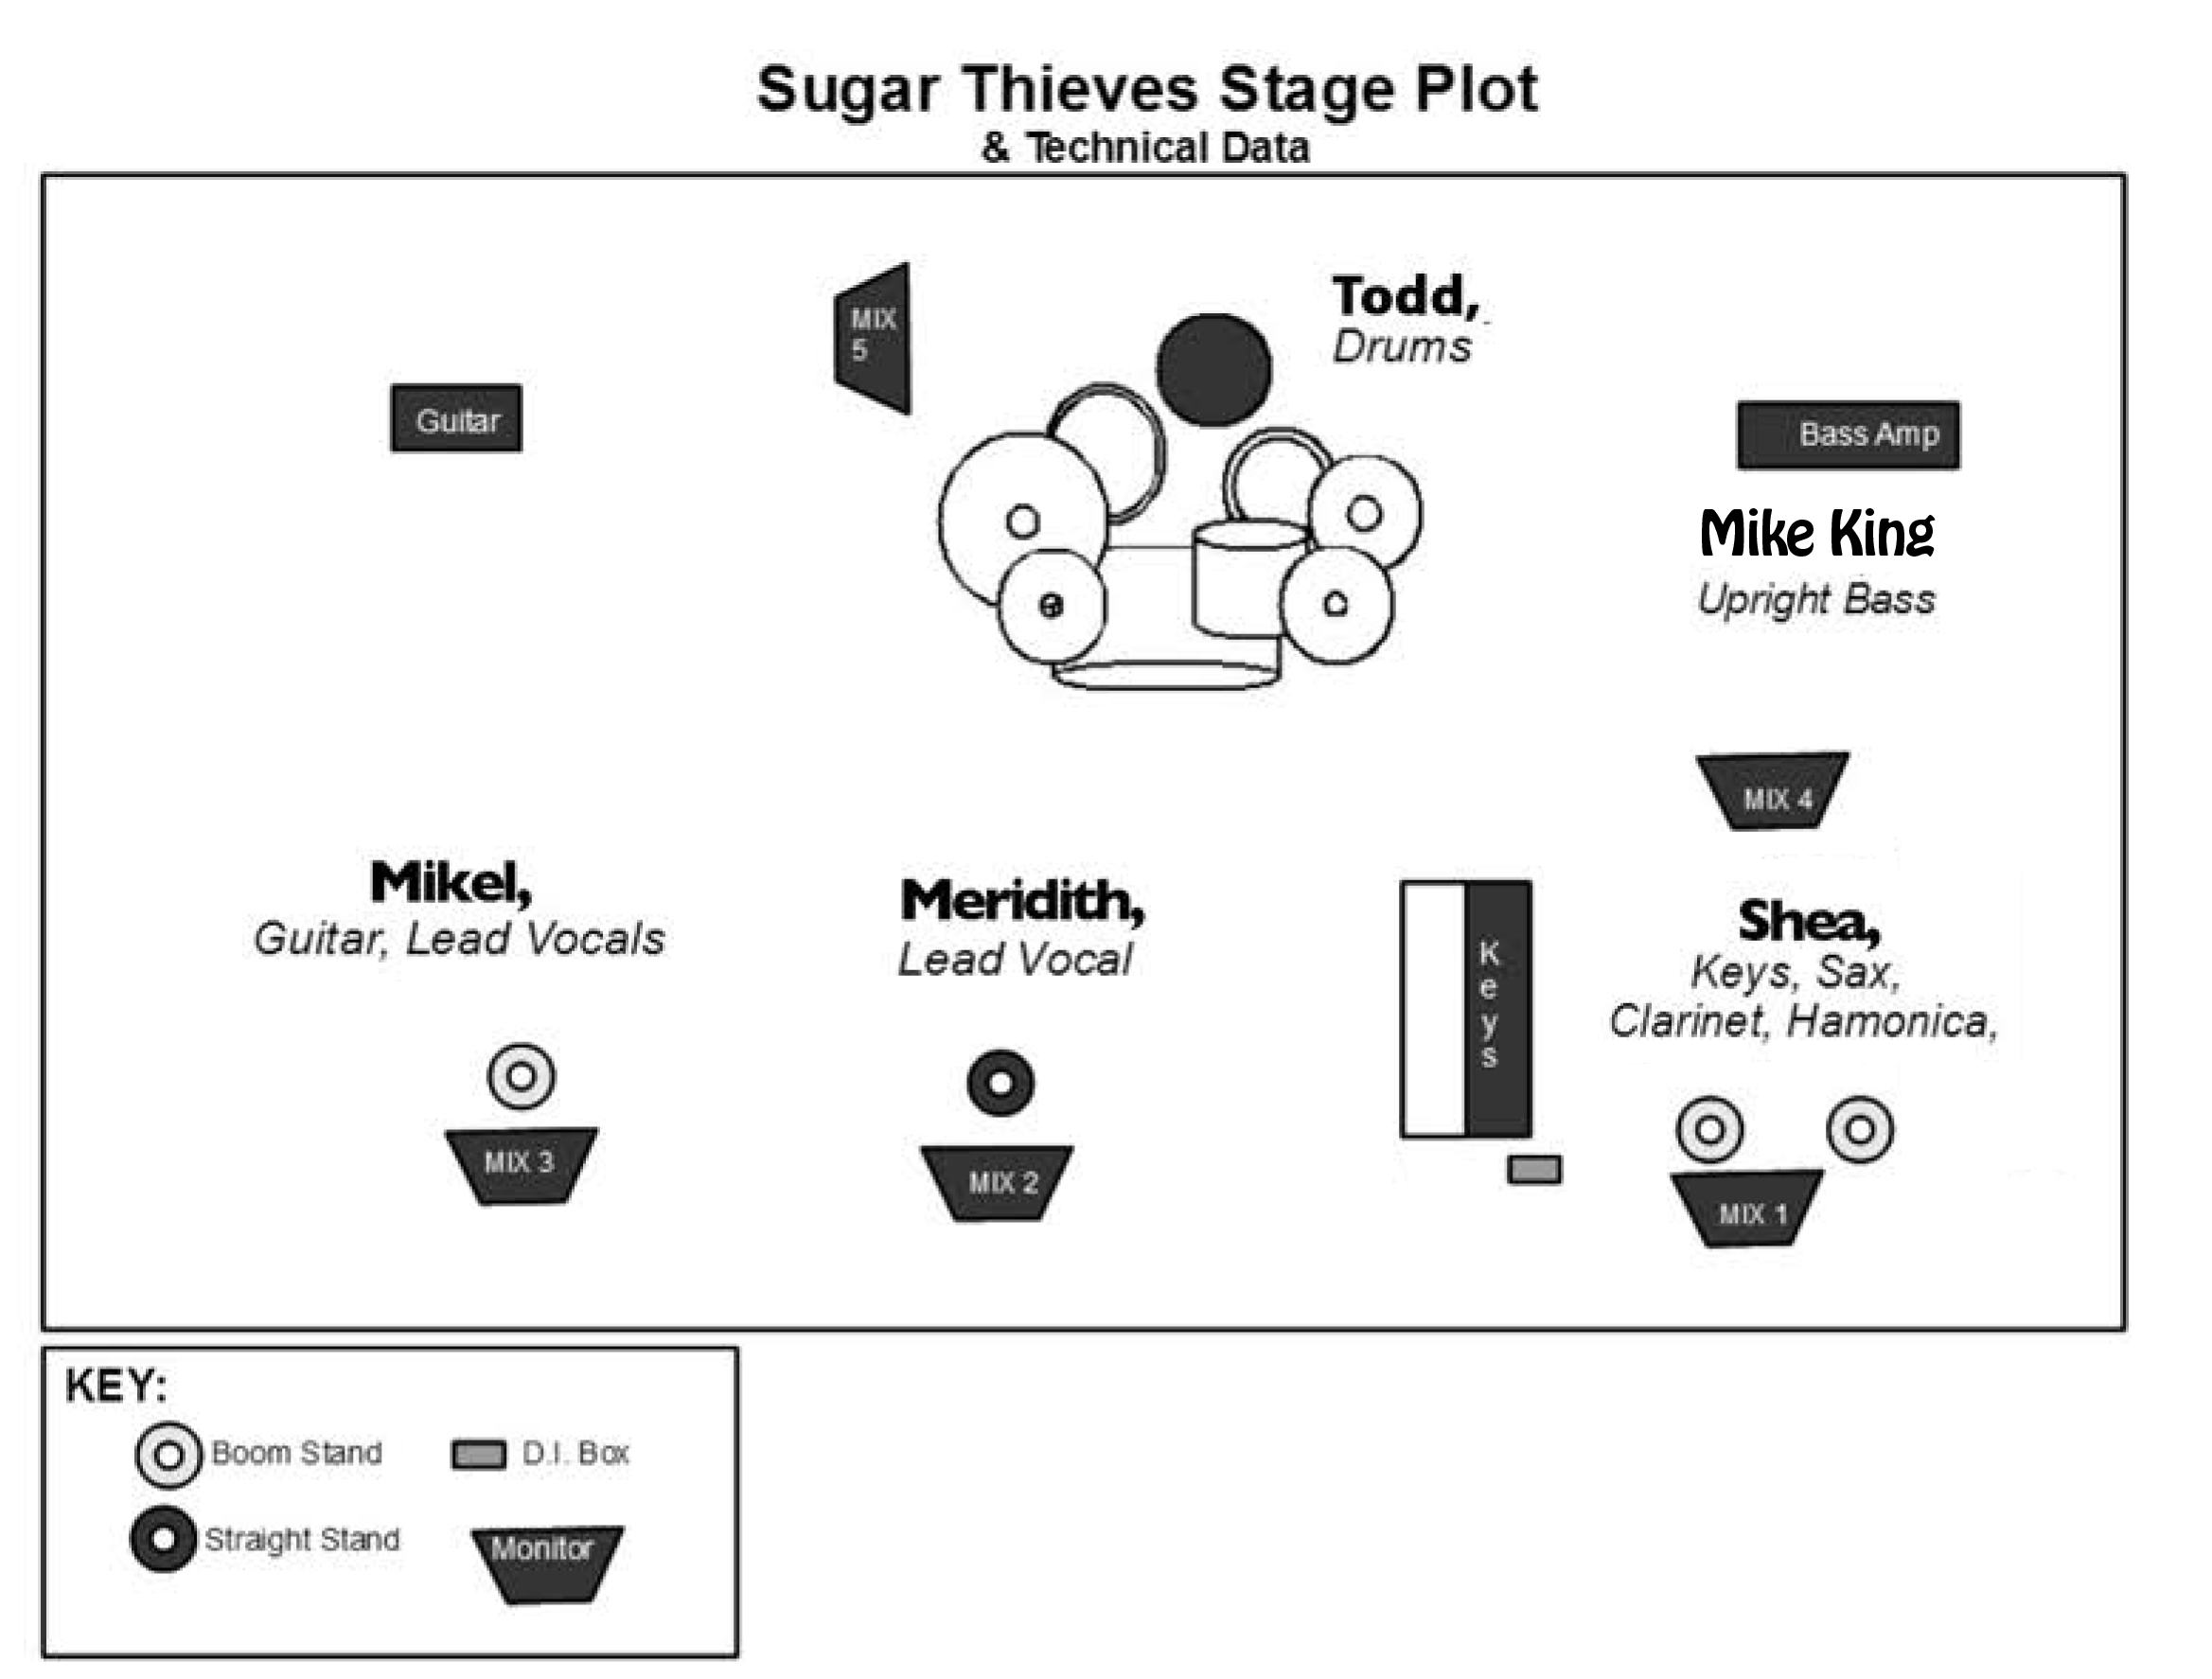 Sugar_Thieves_Stage_Plo